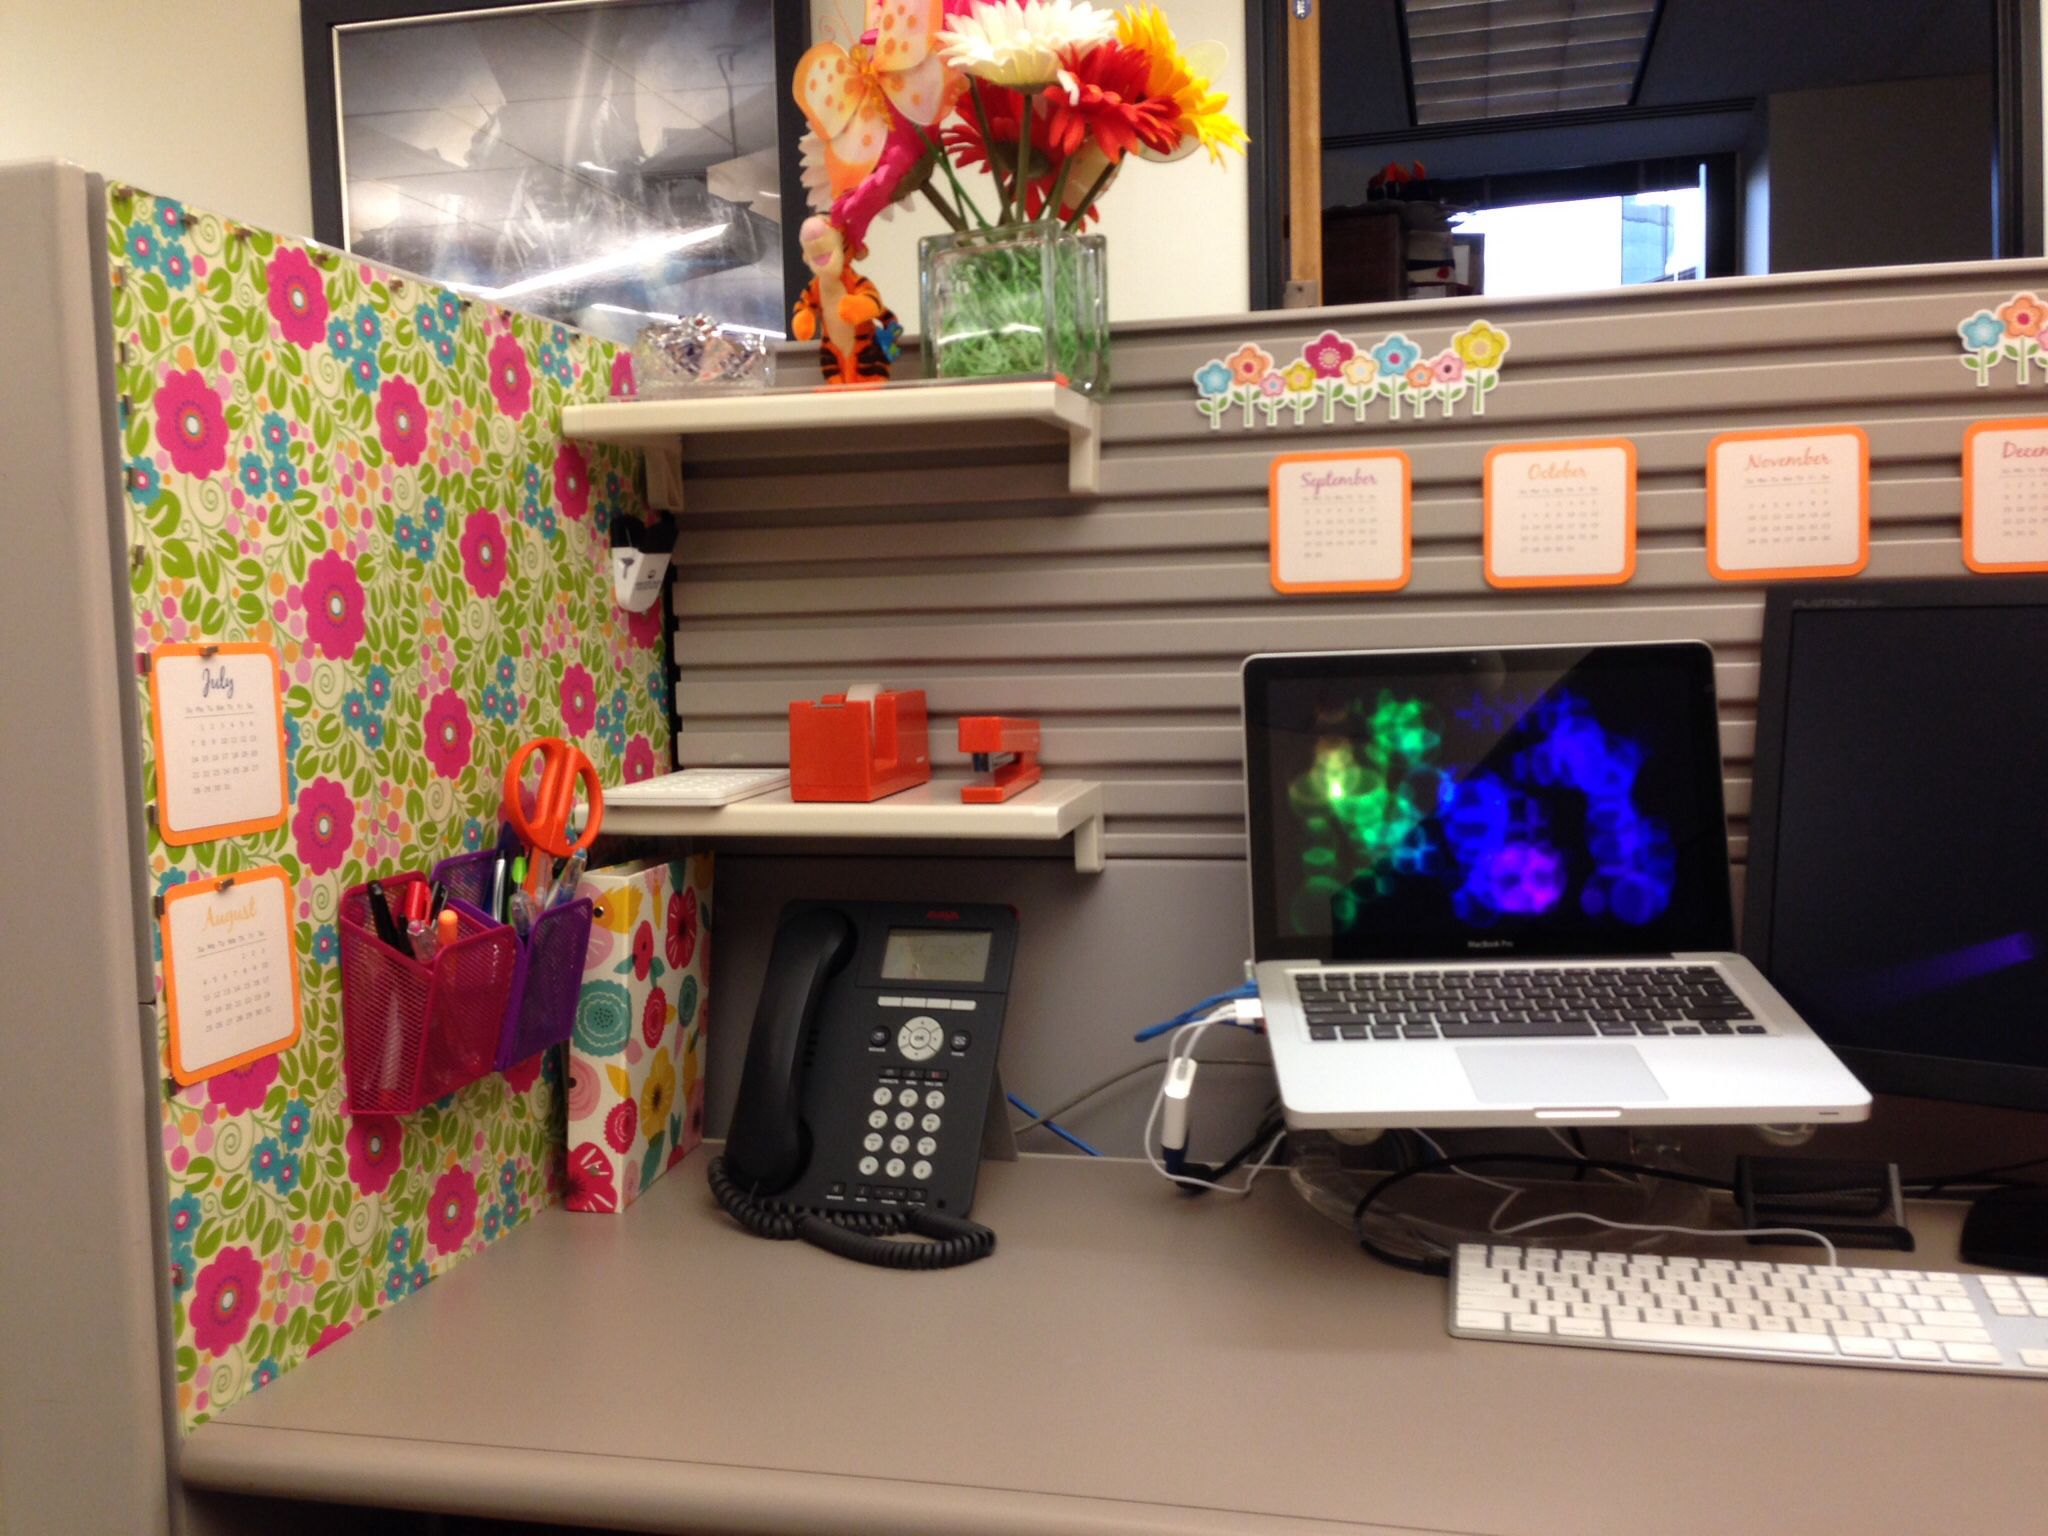 Your Cubicle Doesn 39 T Have To Be Ugly Cubicle Ideas: cubicle desk decorating ideas